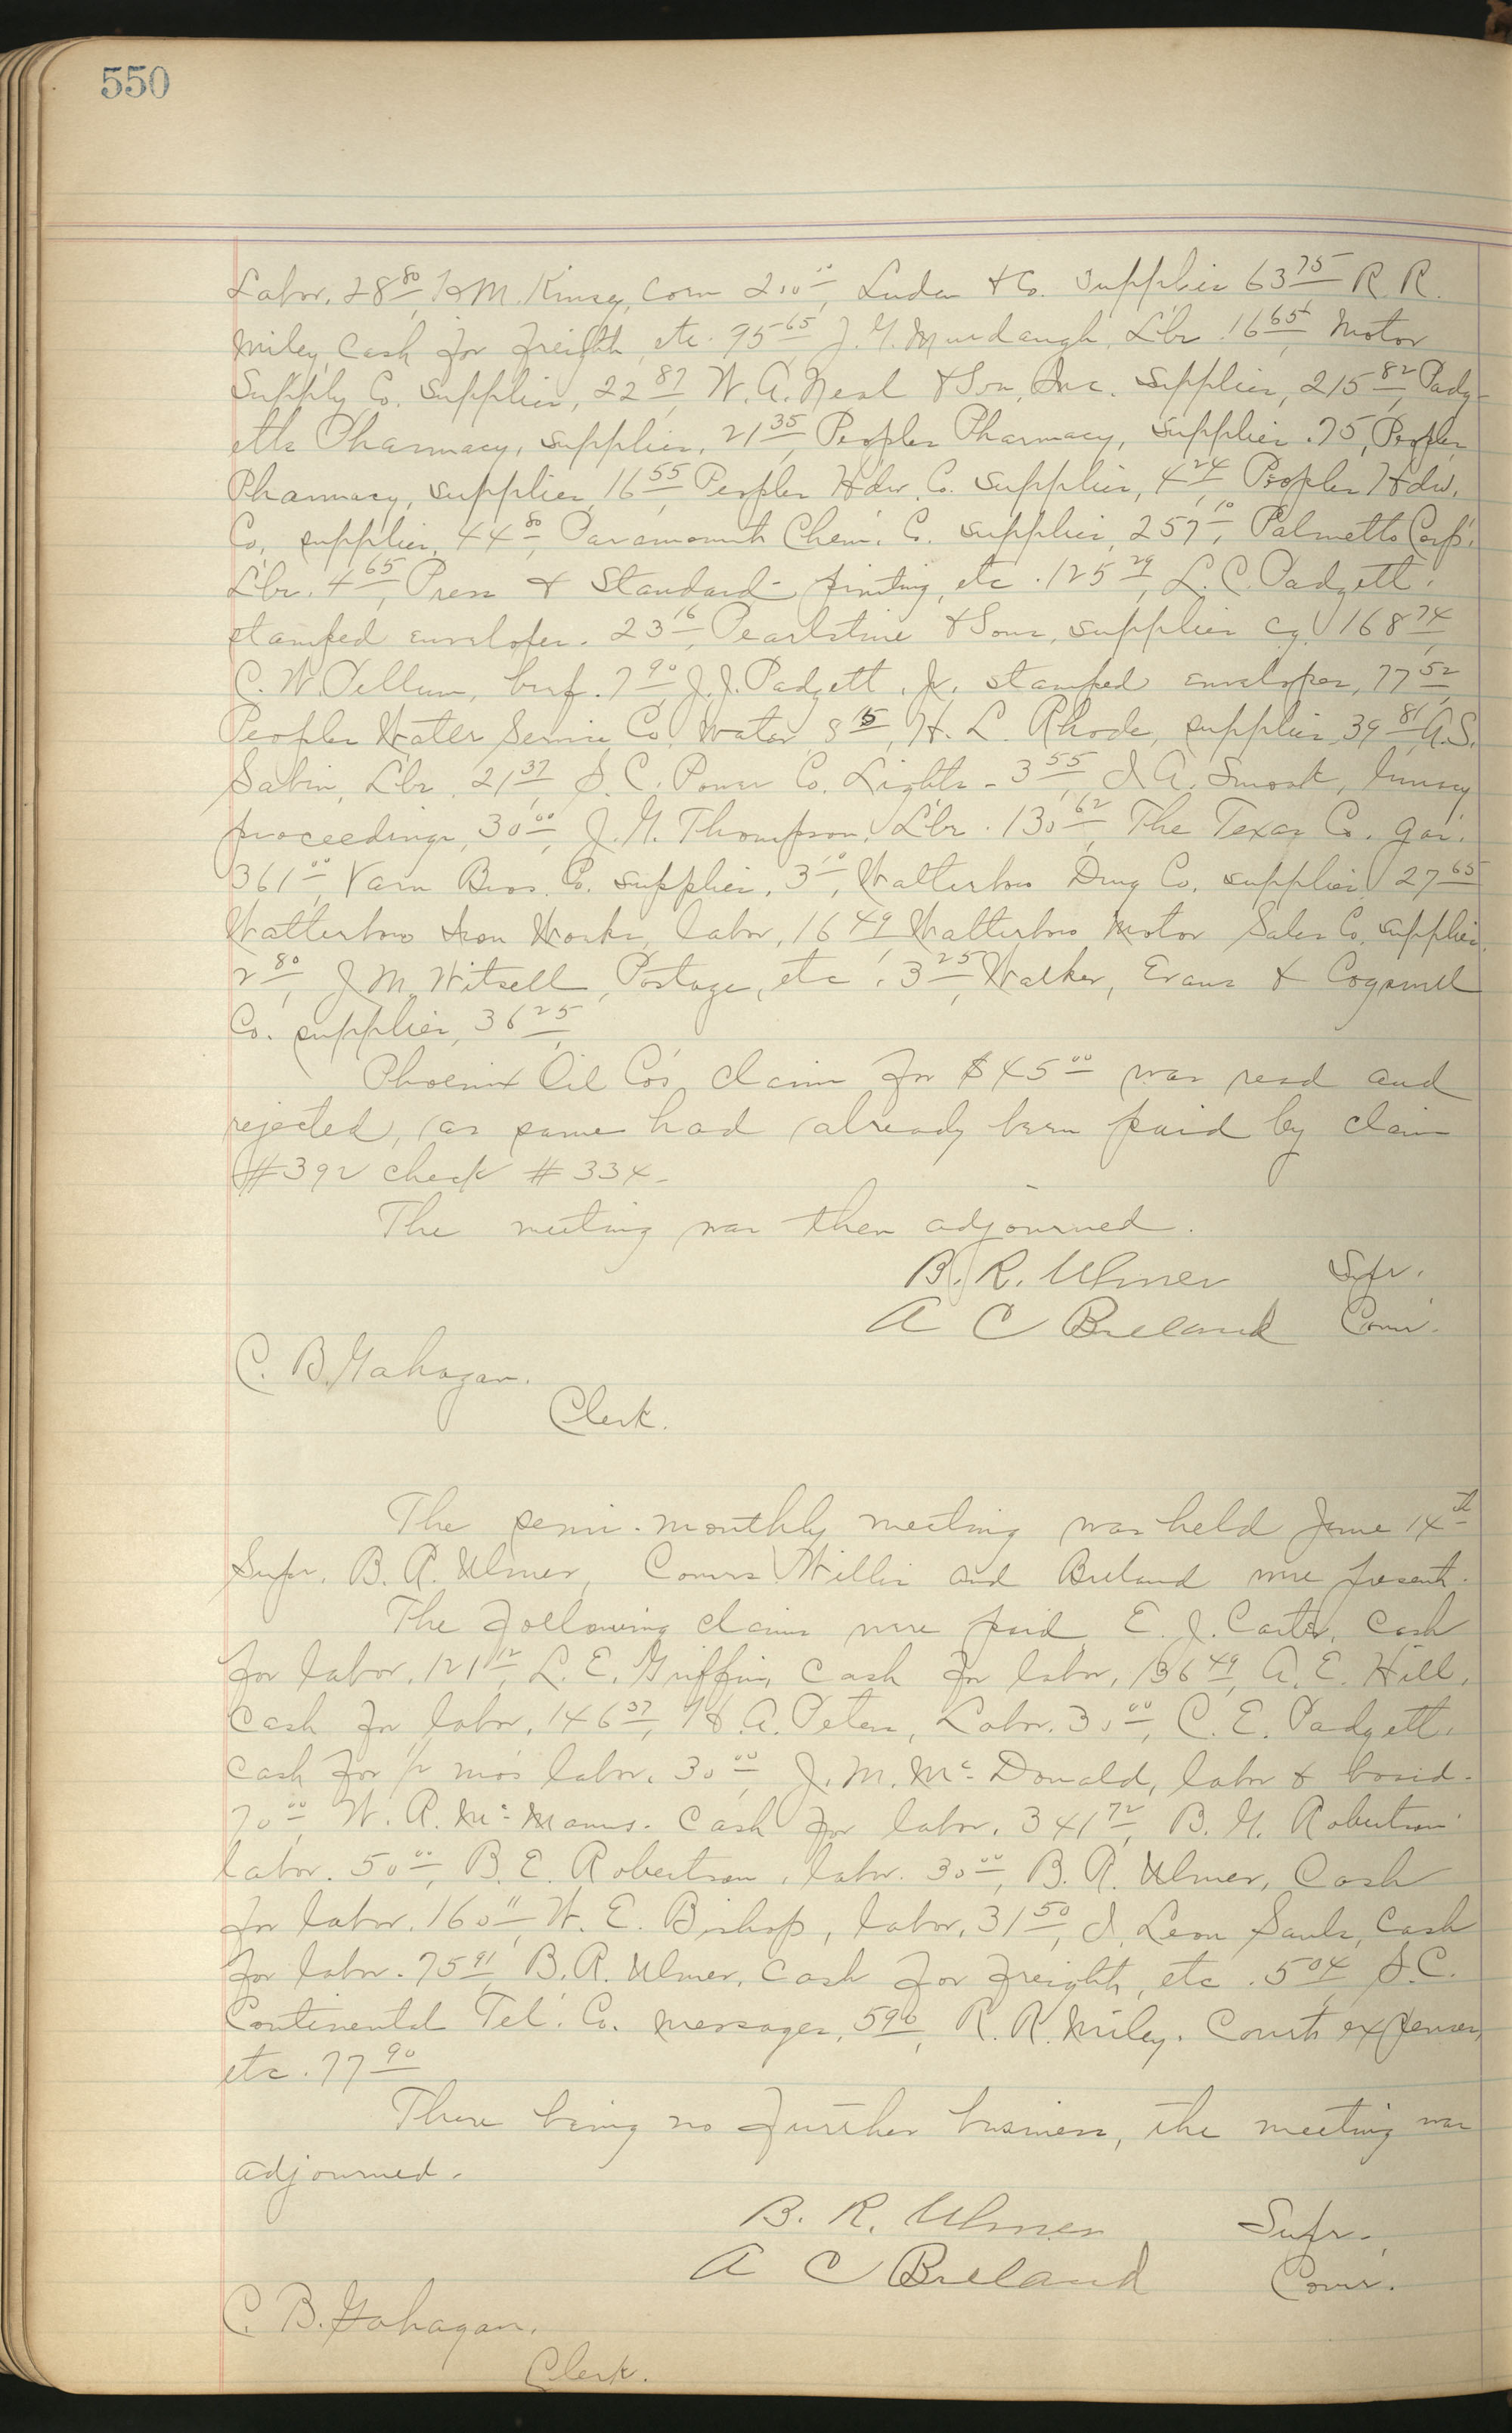 Colleton County Highway Commission Ledger, Page 550